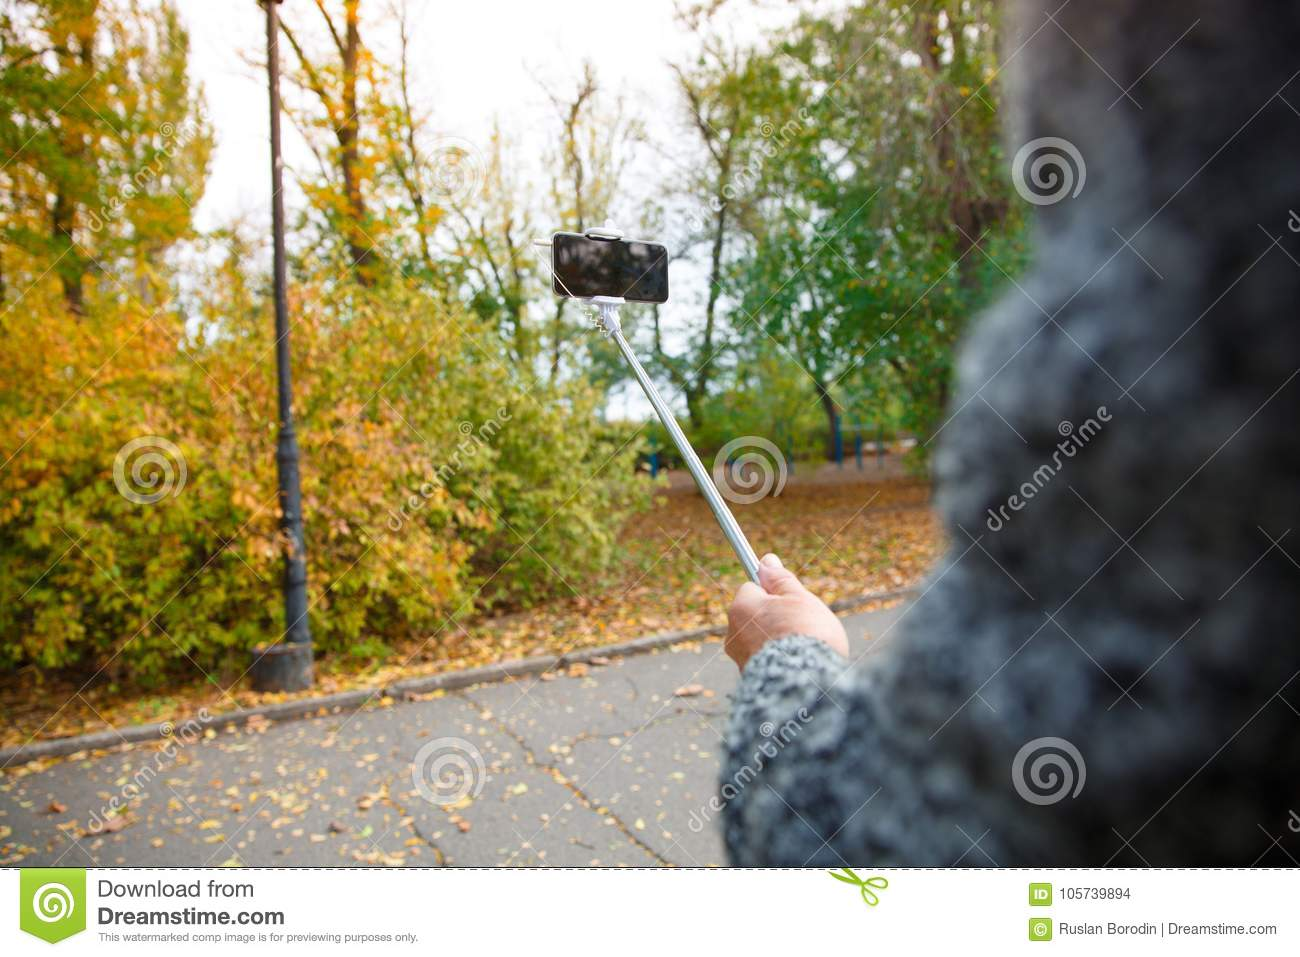 A man`s hand holding a mobile phone with a monopod in a warm park.